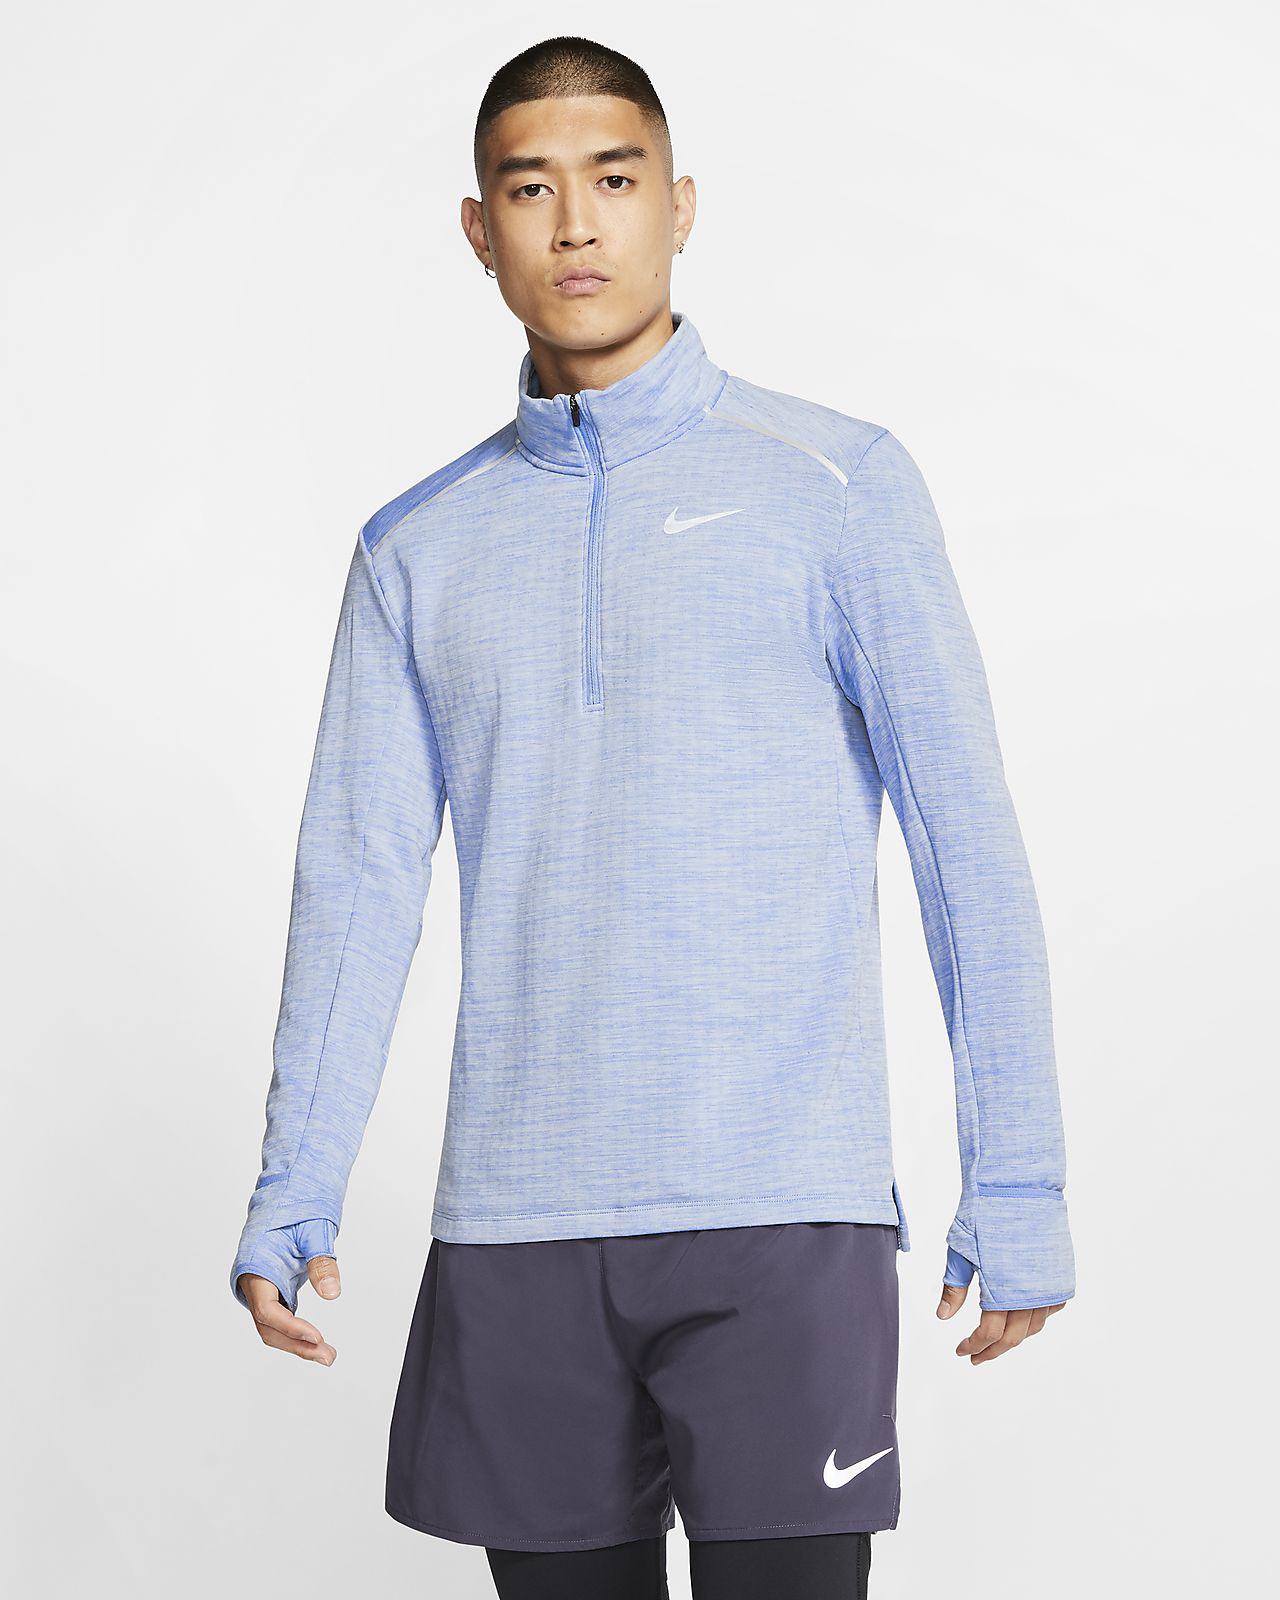 Nike Therma Sphere Element 3.0 Men's 1/2-Zip Running Top